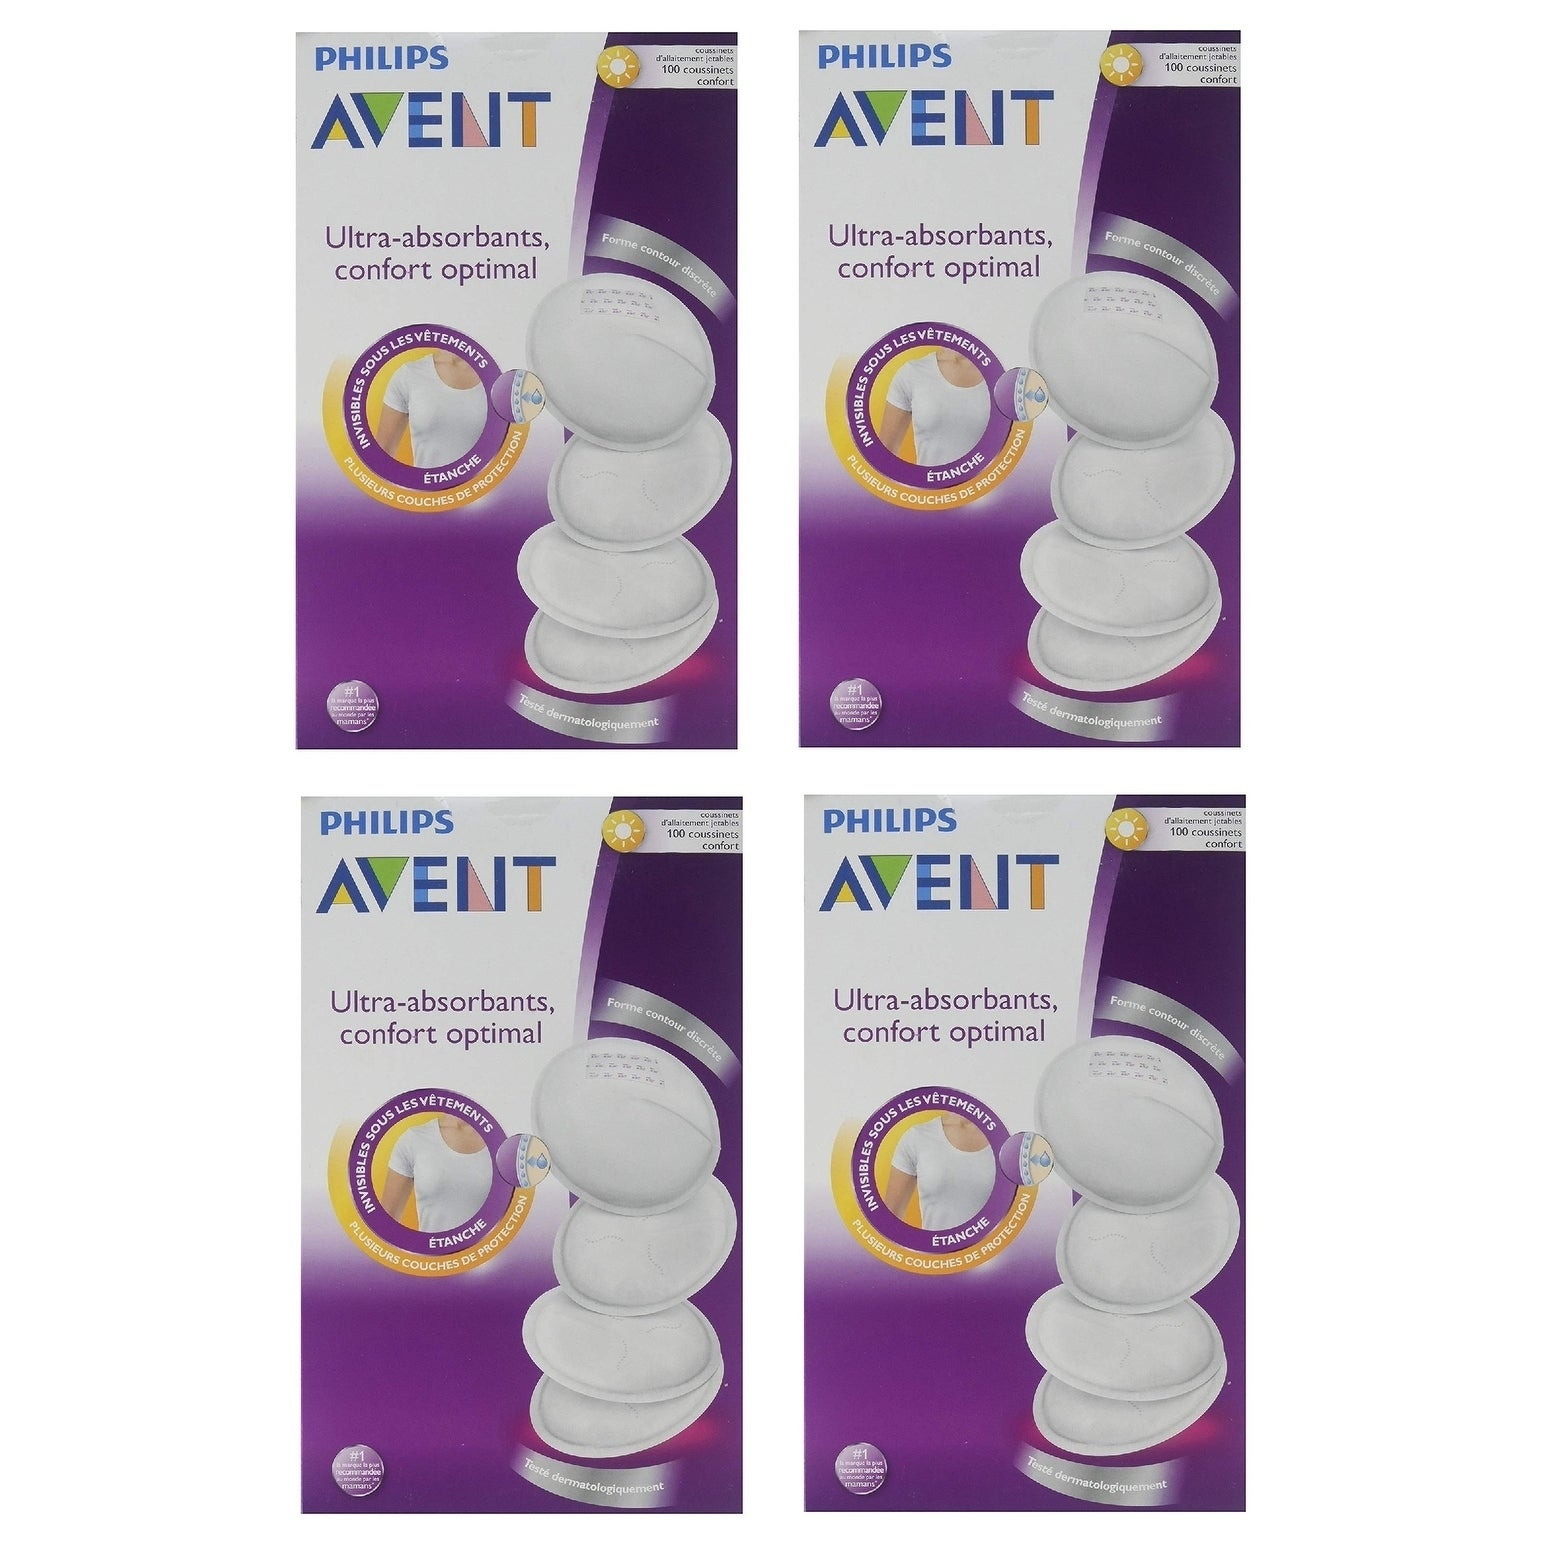 Philips Avent Scf254 10 Day Disposable Breast Pads White 100 Count Breastpads Washable Brand Story By